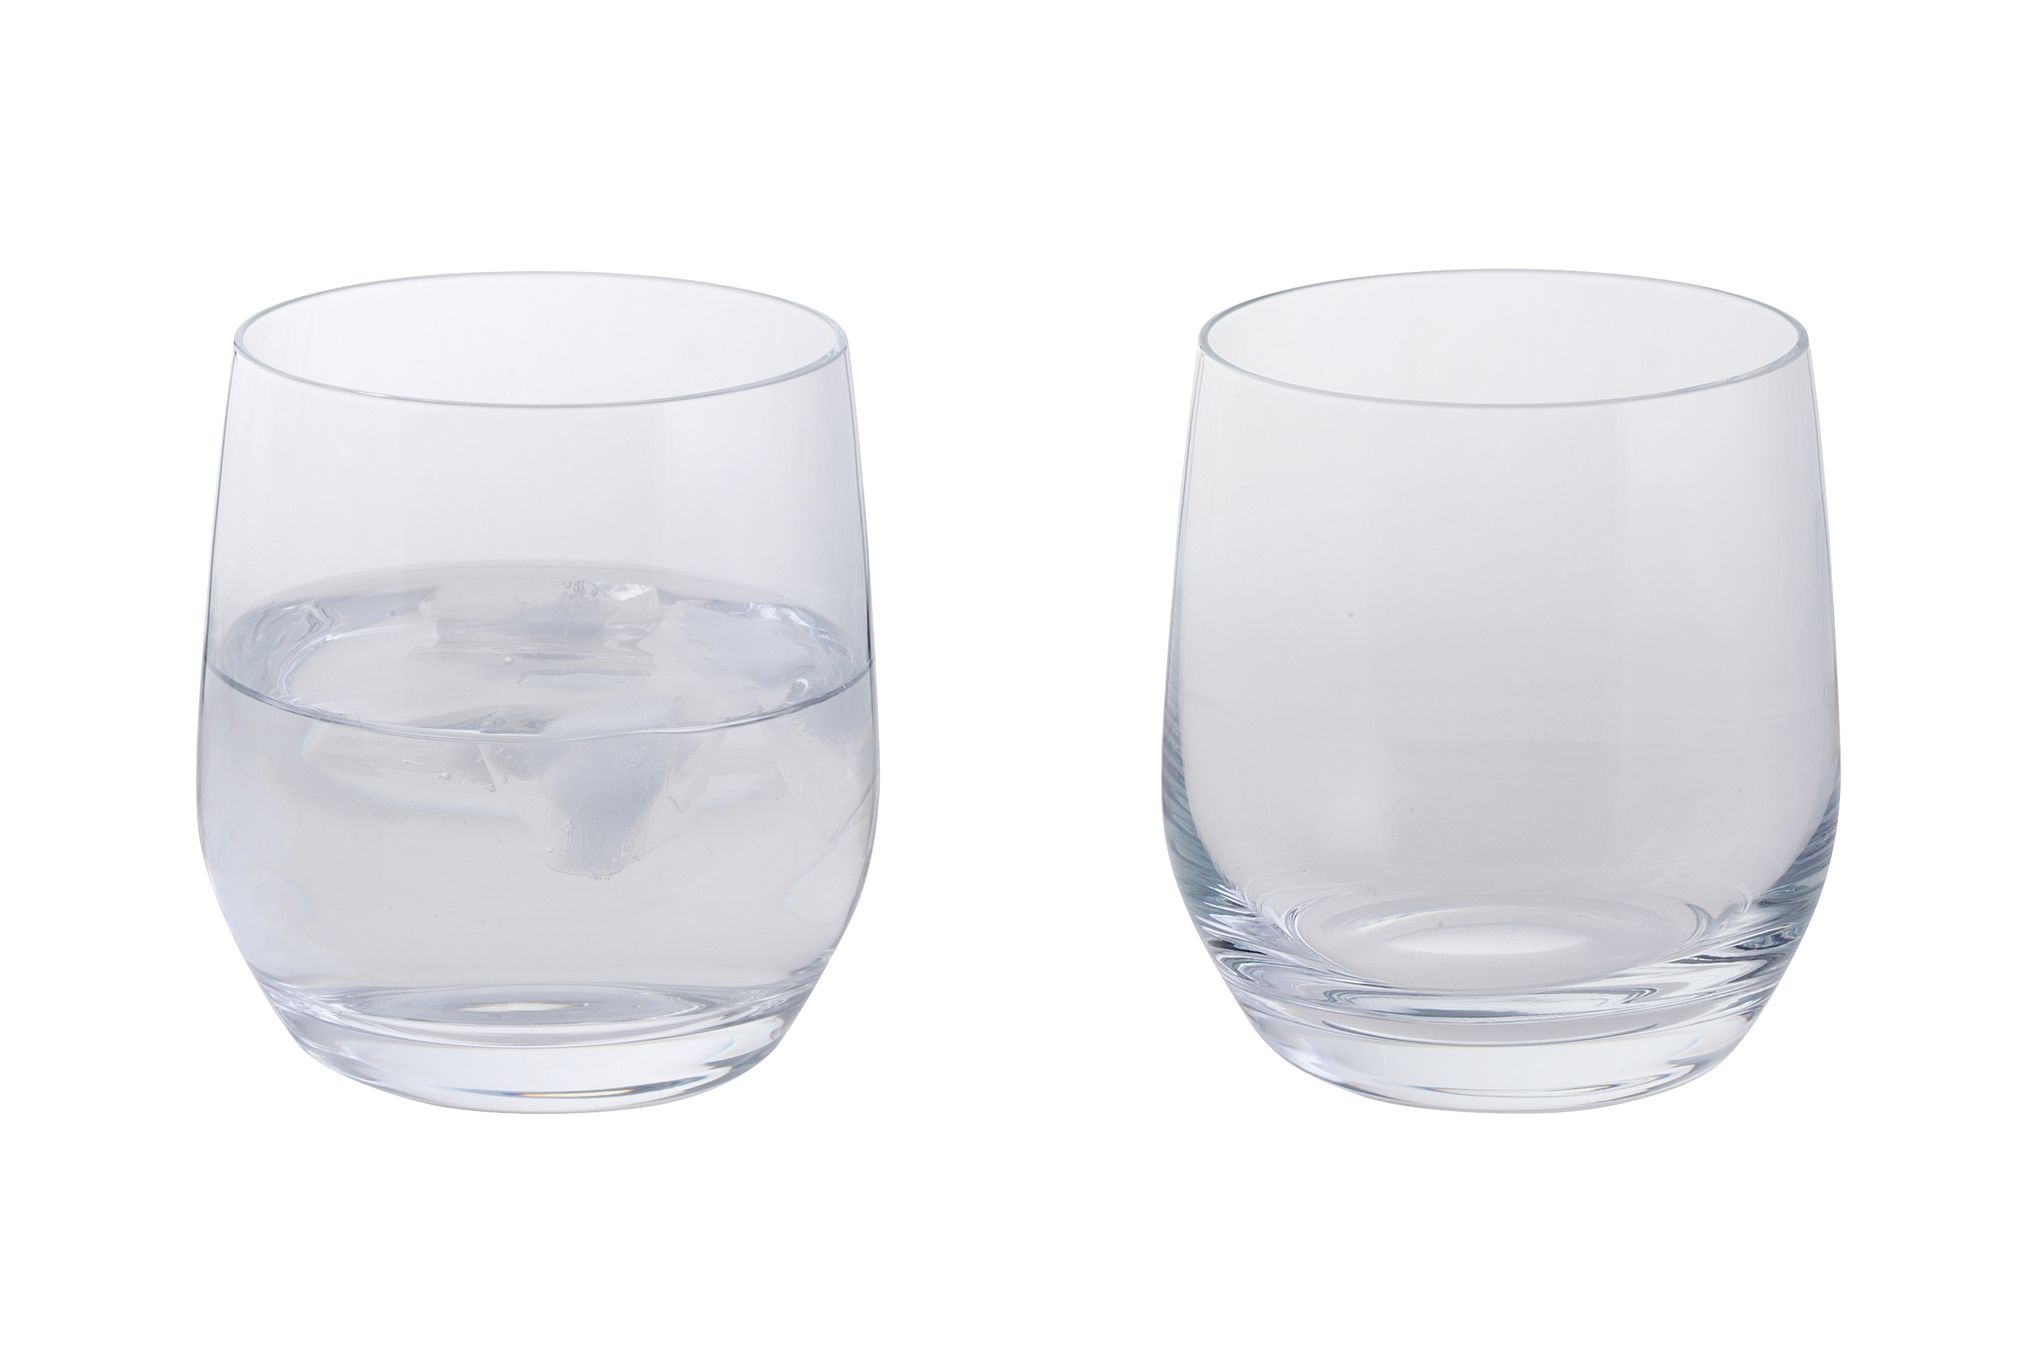 Dartington Crystal Wine & Bar Pair of Tumblers 370ml thumb 1